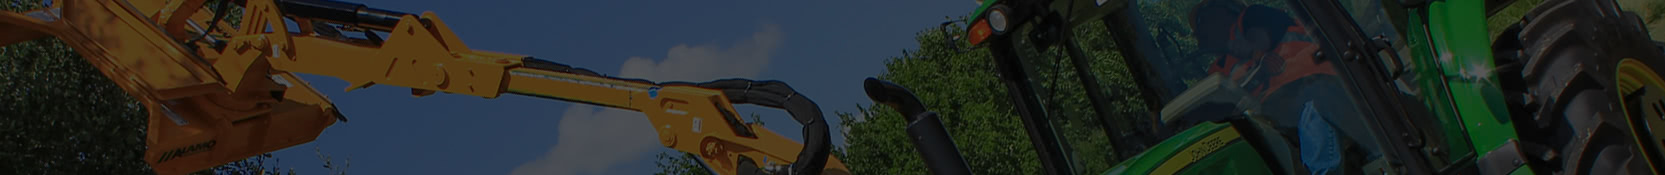 Alamo Industrial Implements for Agriculture | Everglades Equipment Group